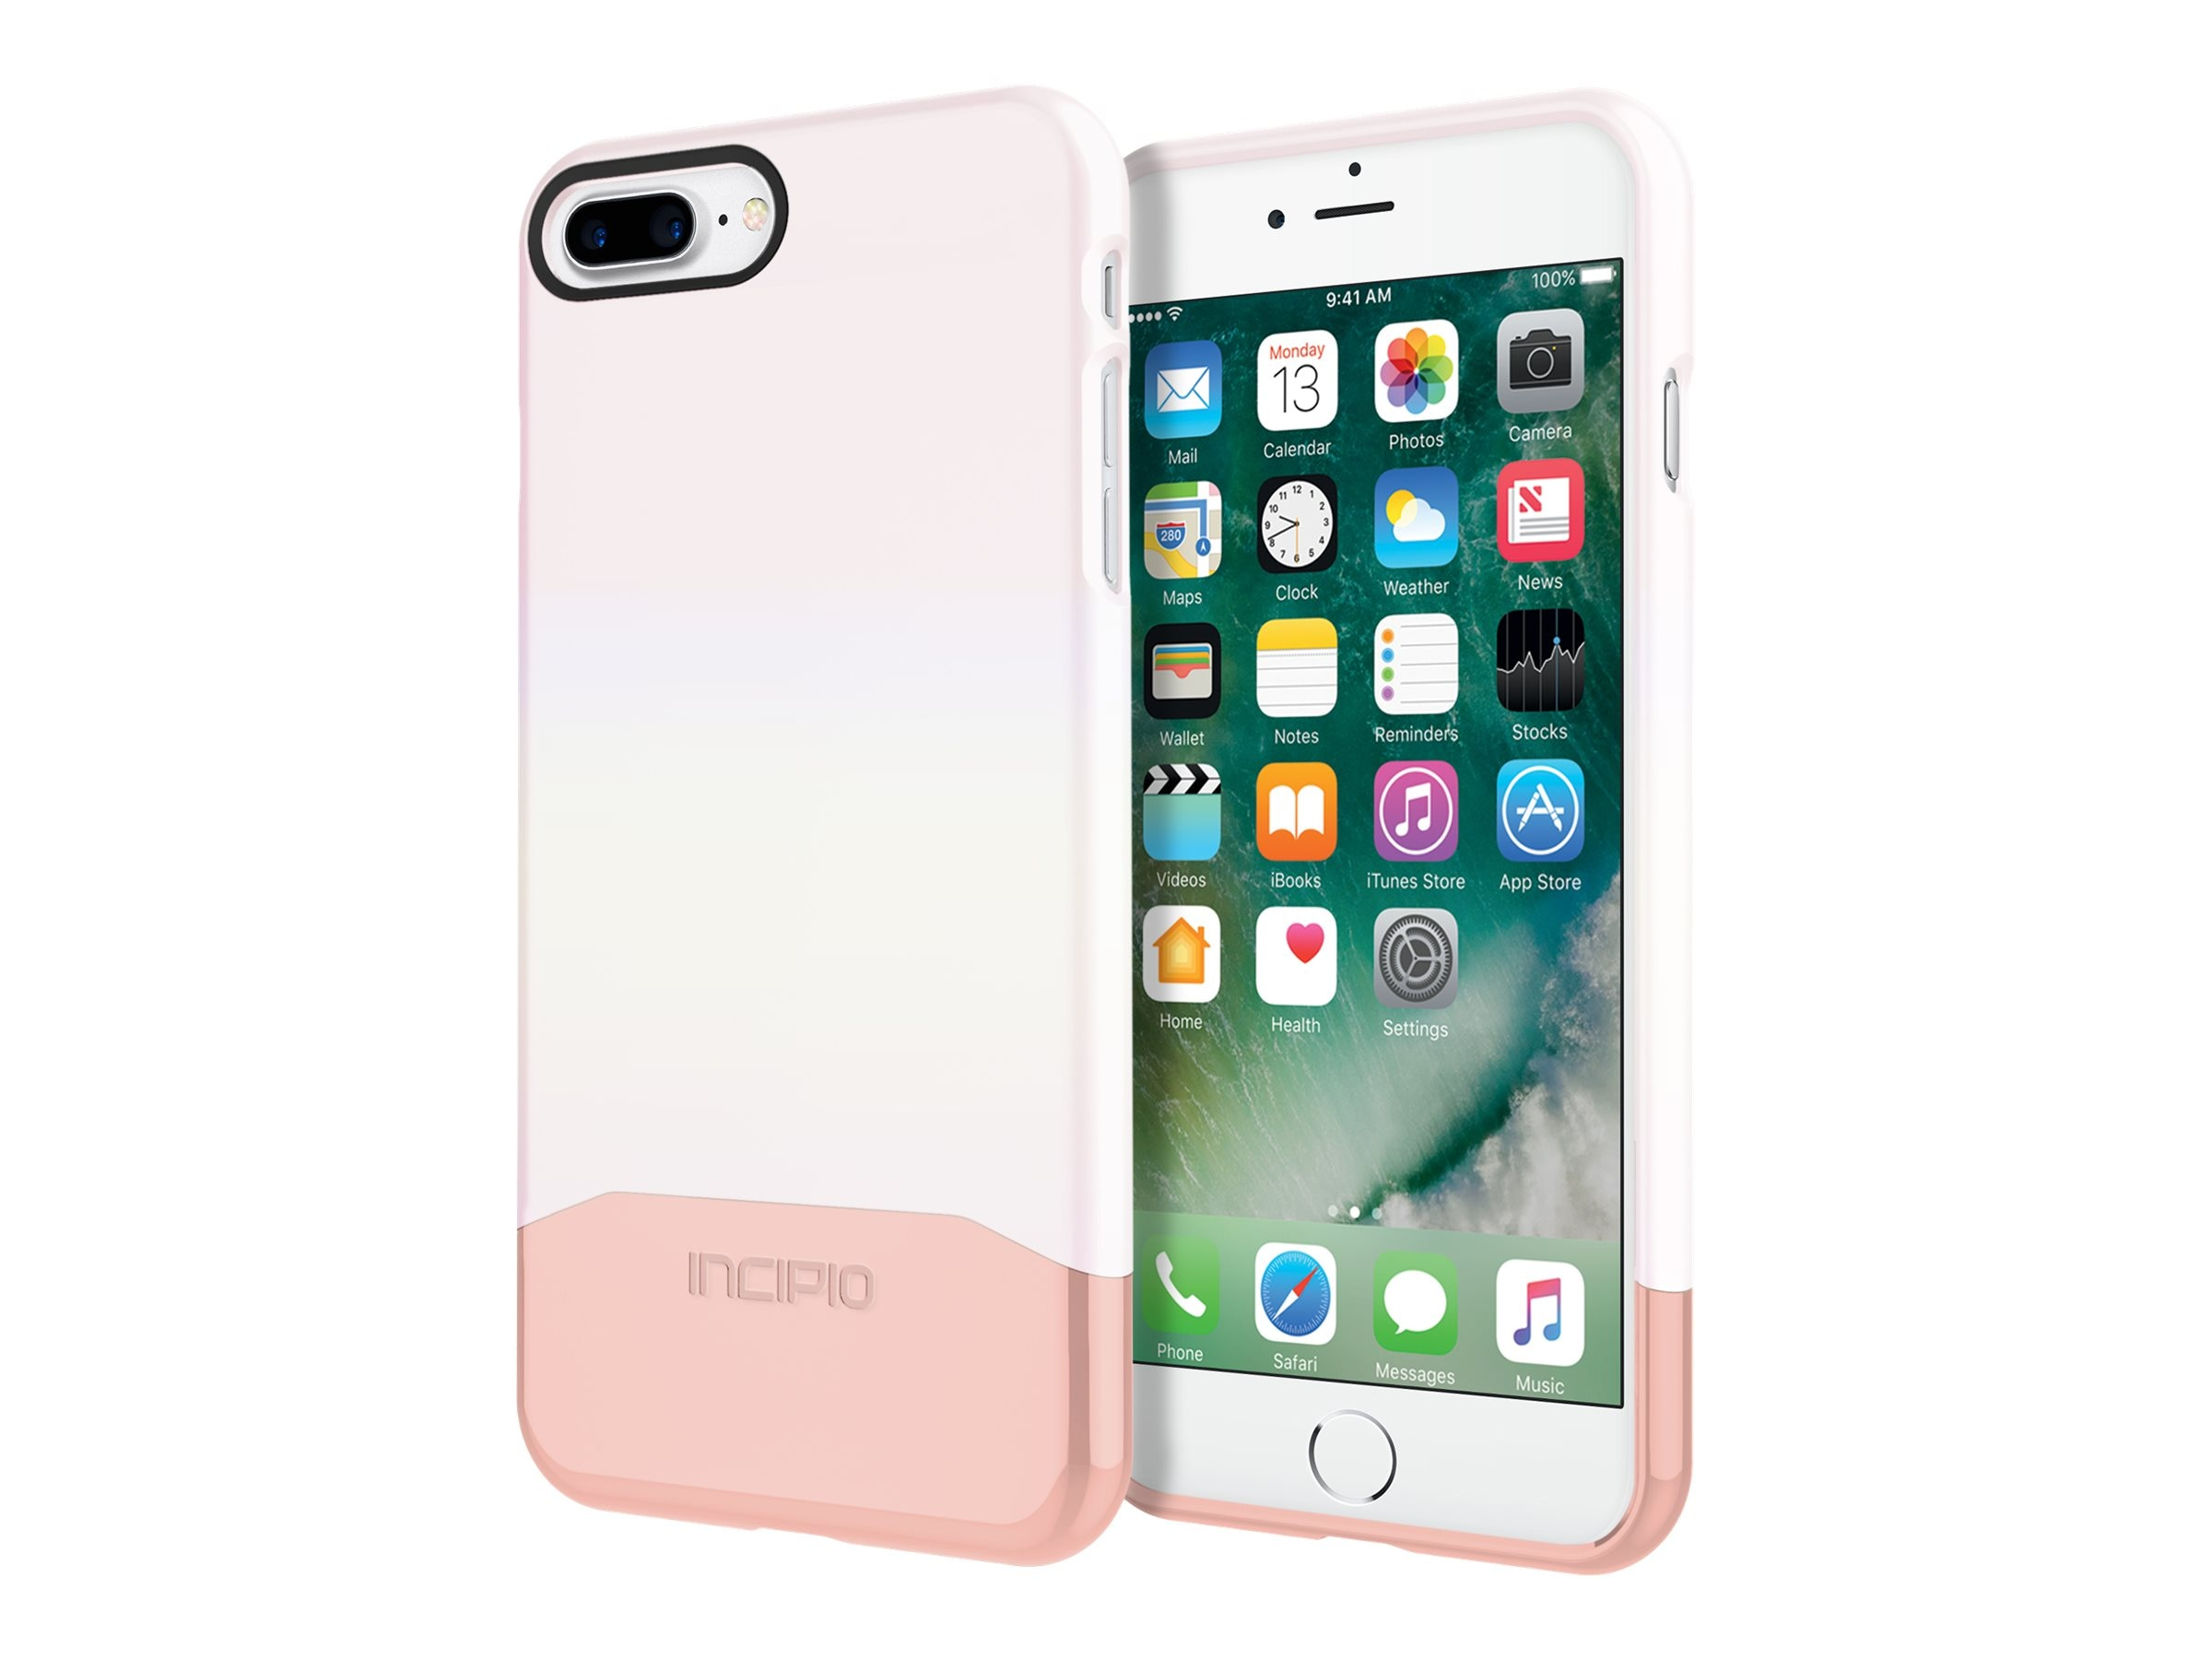 Incipio Edge Chrome Two-Piece Slider Case for iPhone 7 Plus, Iridescent White Opal Chrome Rose Gold, IPH-1501-WRG